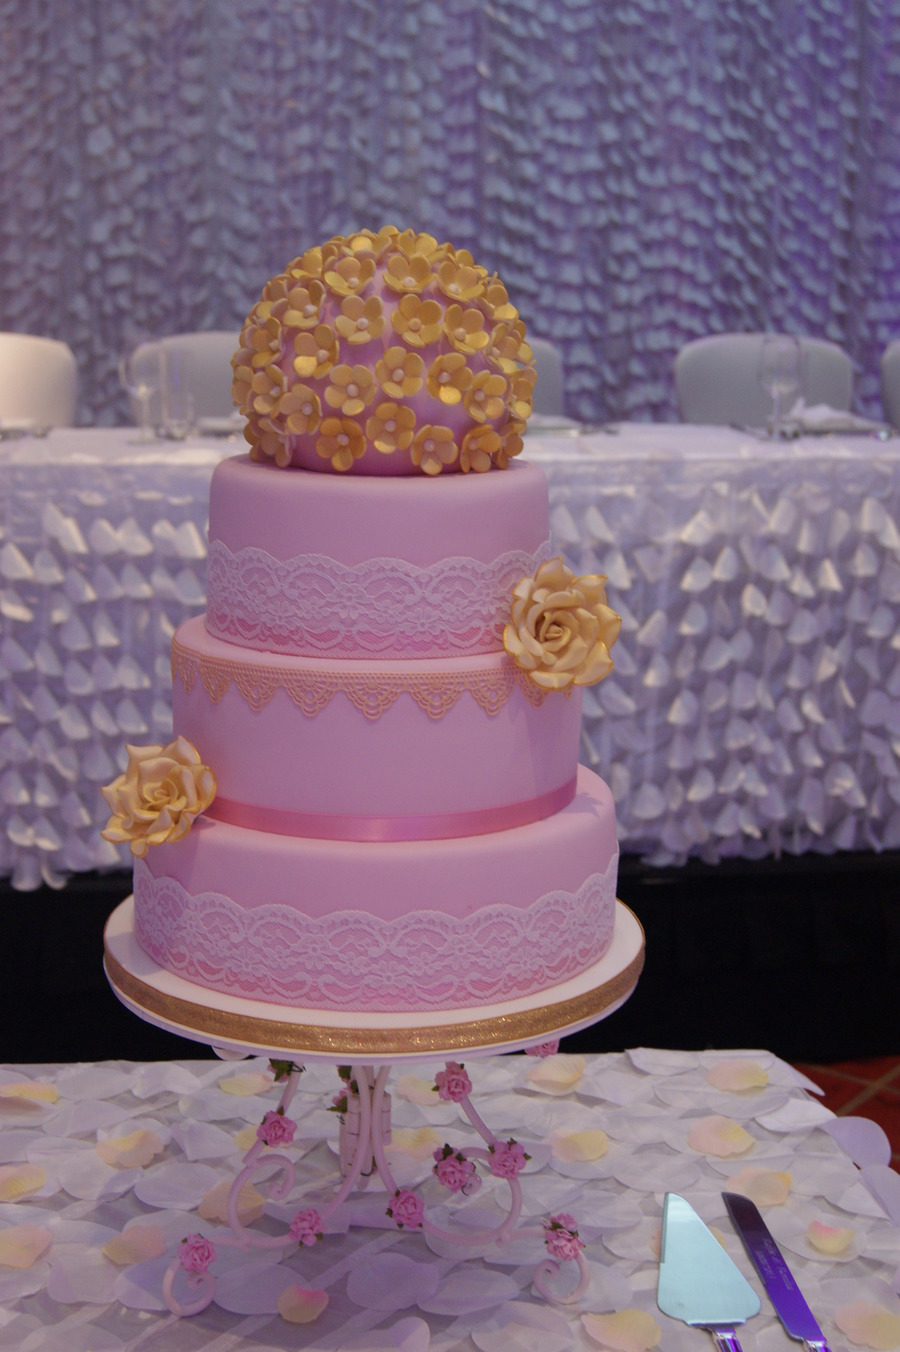 Pink Gold Wedding Cake 4 Tiers Handmade Sugar Roses And Blossoms